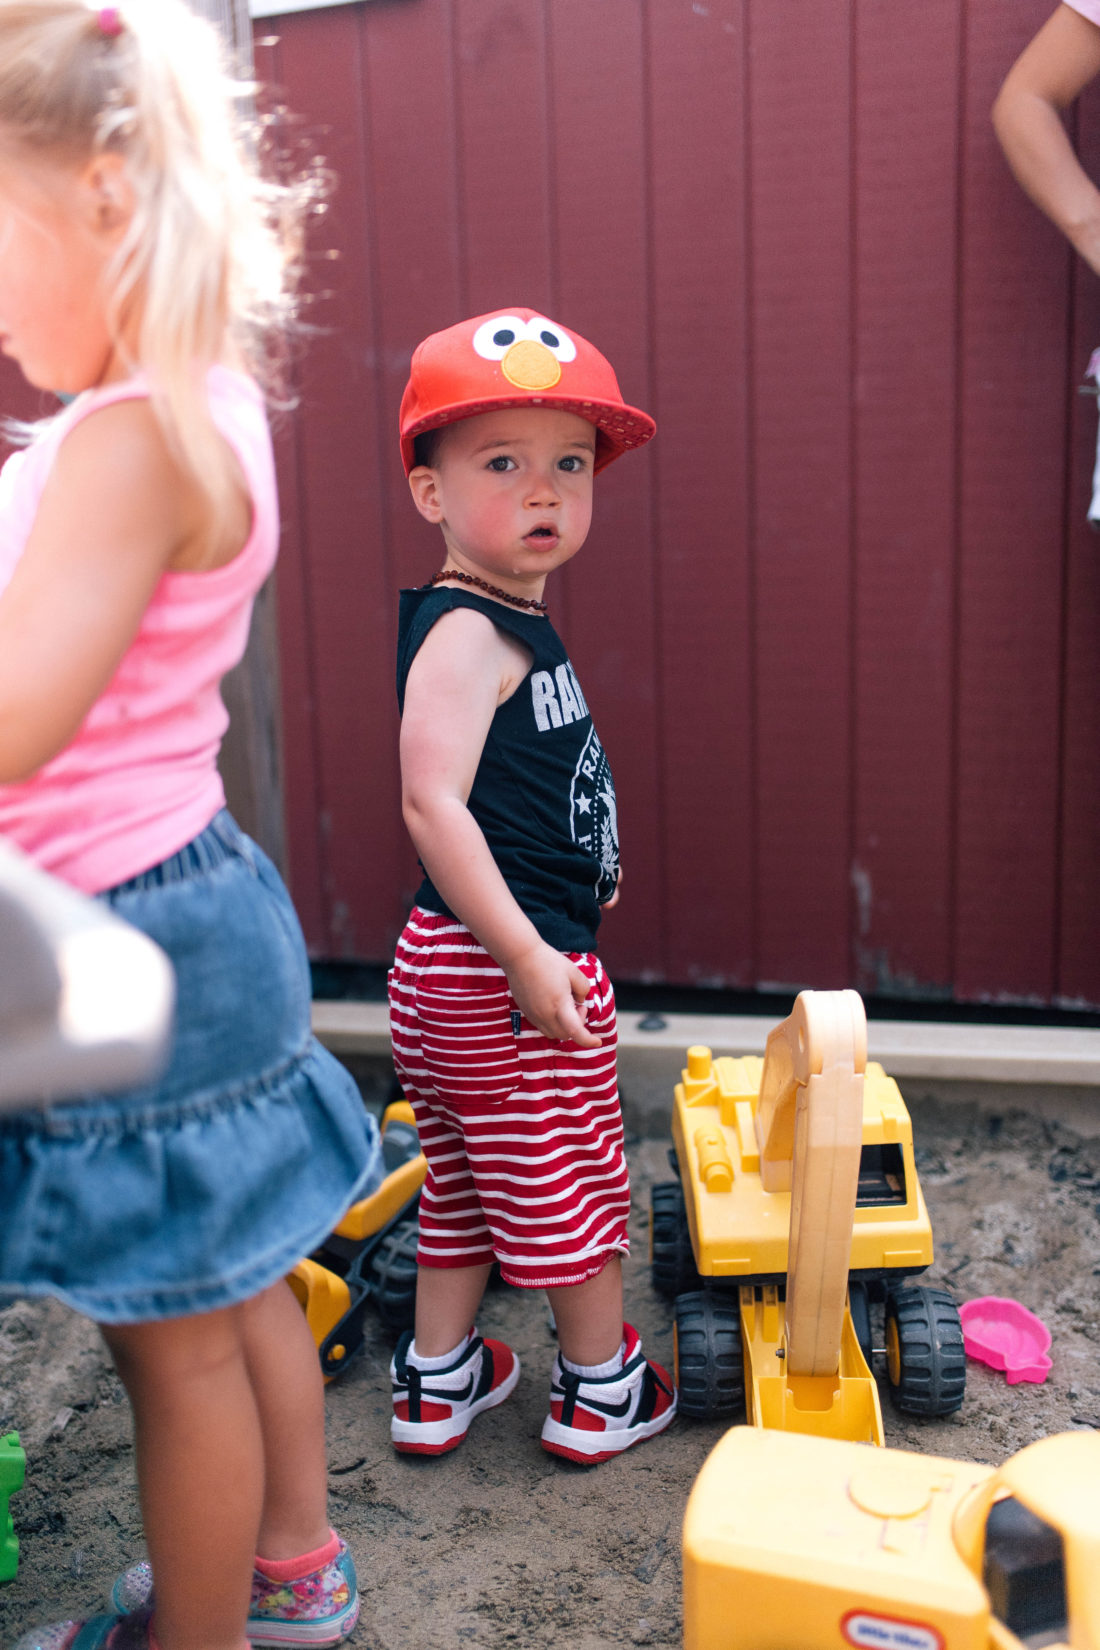 Major Martino stands in the sand box in Connecticut, wearing striped shorts and an elmo hat